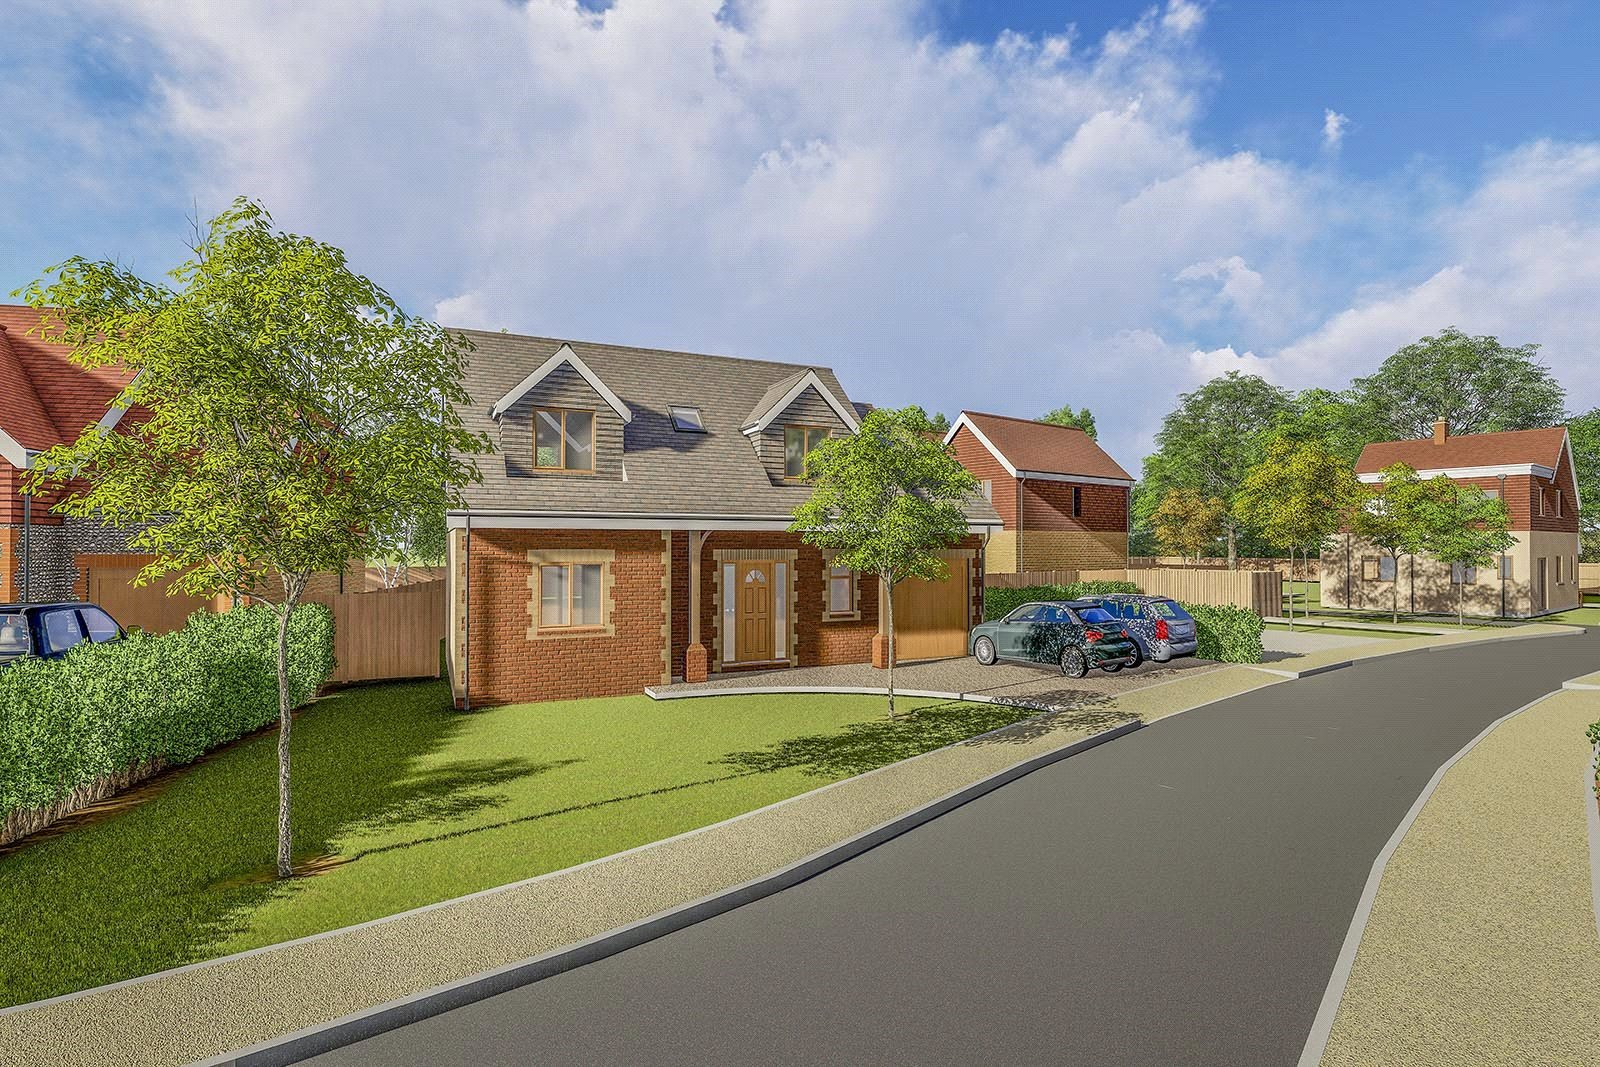 3 bed house for sale in Swallows Gate, Dappers Lane, Angmering 2